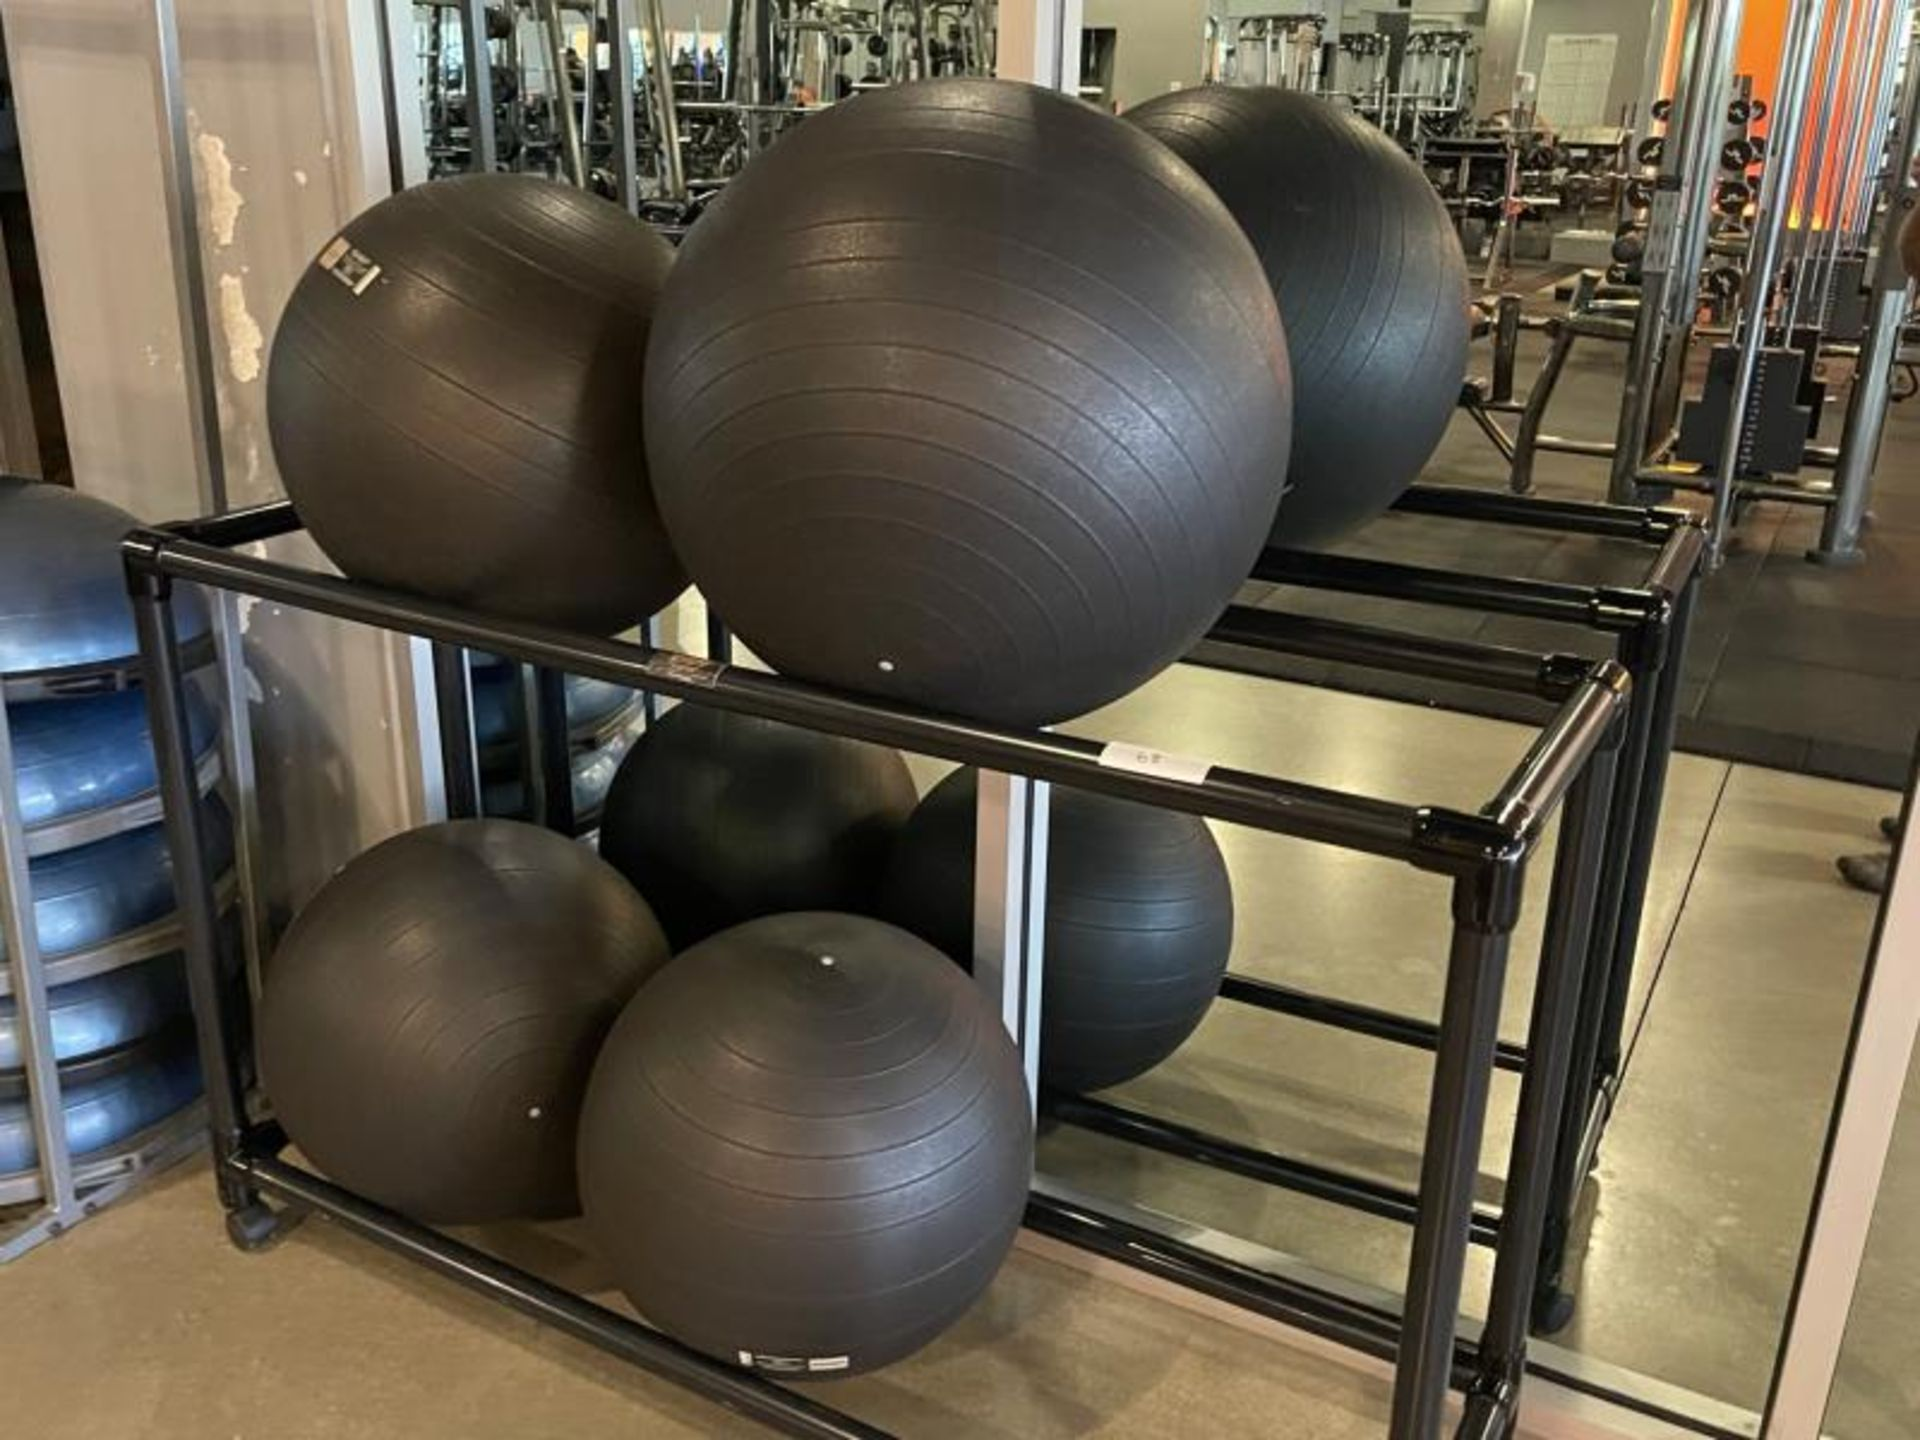 Lot of 4 Versa Ball Pro Balls with Plastic Fitness Wholescale Rack